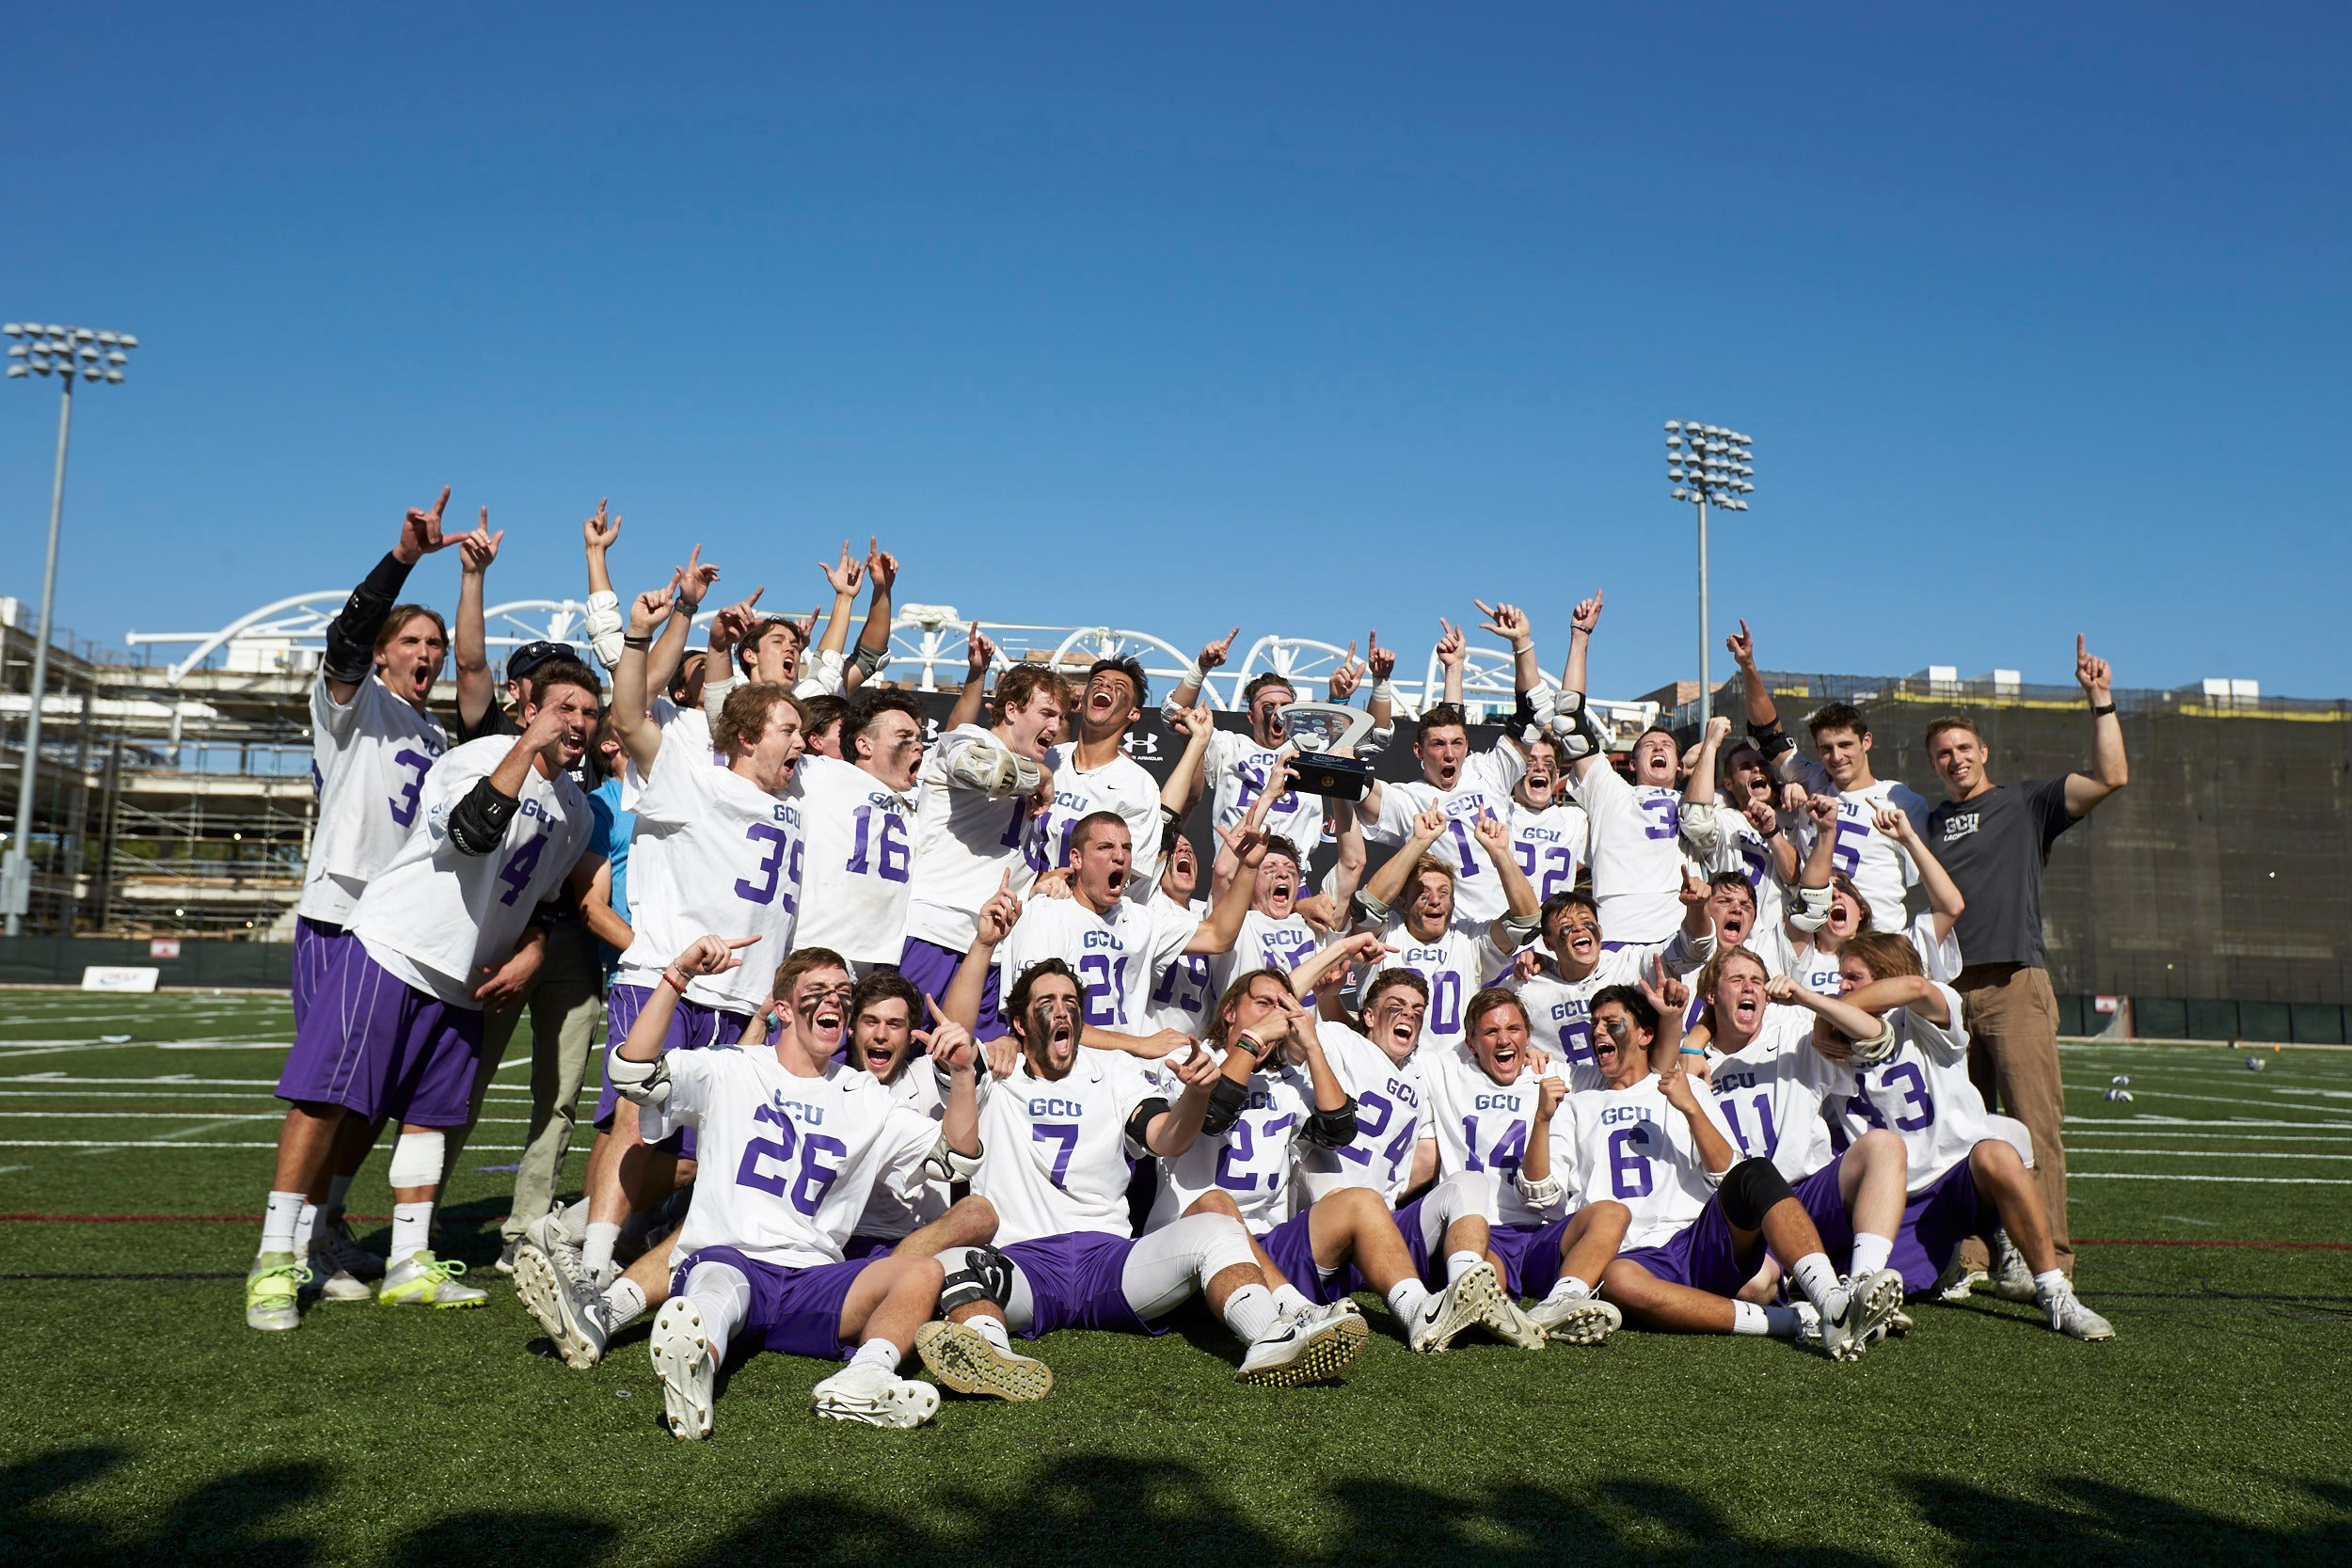 GCU's 13thconsecutive win was a 12-8 triumph that was worth a national championship and a lifetime of smiles. (Source: GCU)